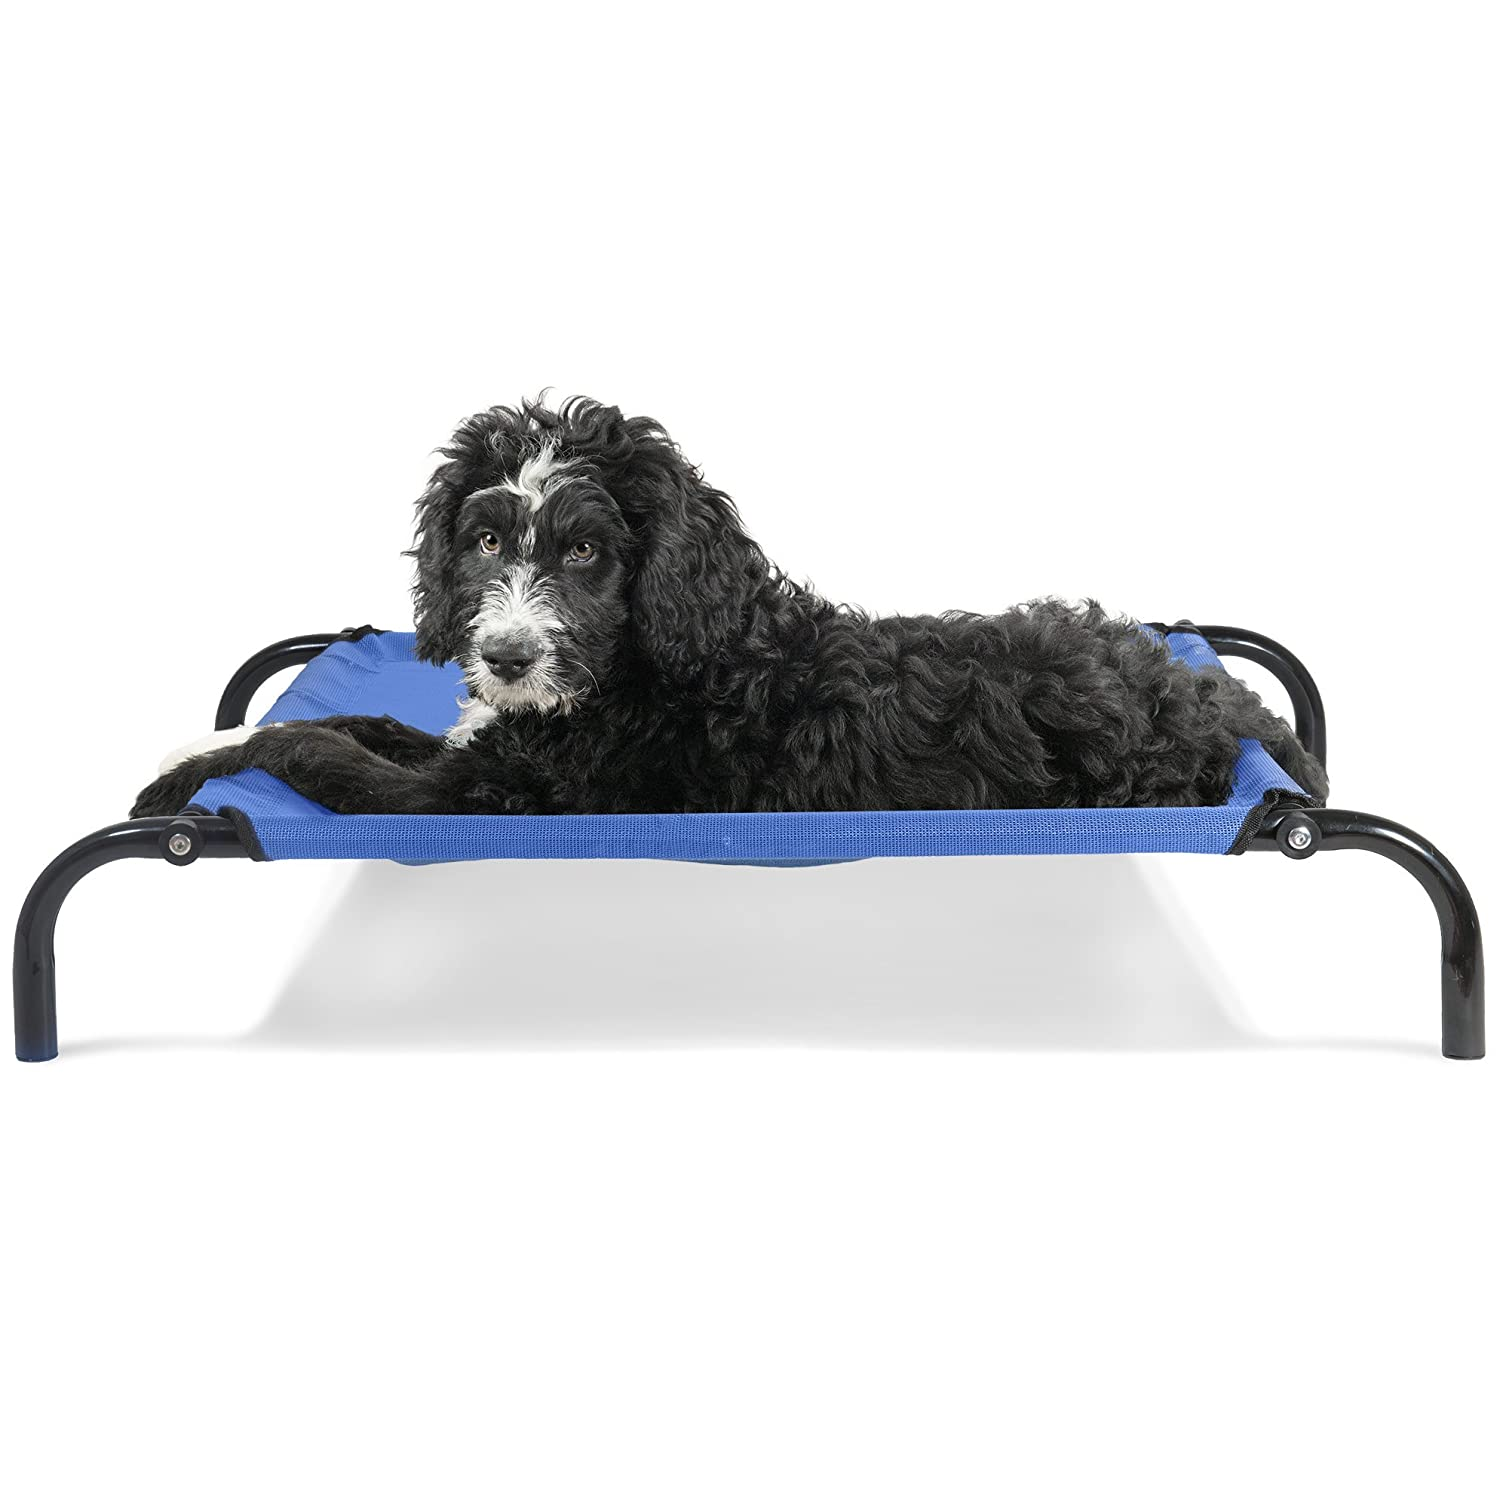 Furhaven Pet Dog Bed Mold Mildew Resistant Breathable Cooling Mesh Elevated Pet Cot Bed, Pet Blanket, Self-Warming Pet Mat Insert for Dogs Cats – Available in Multiple Colors Sizes